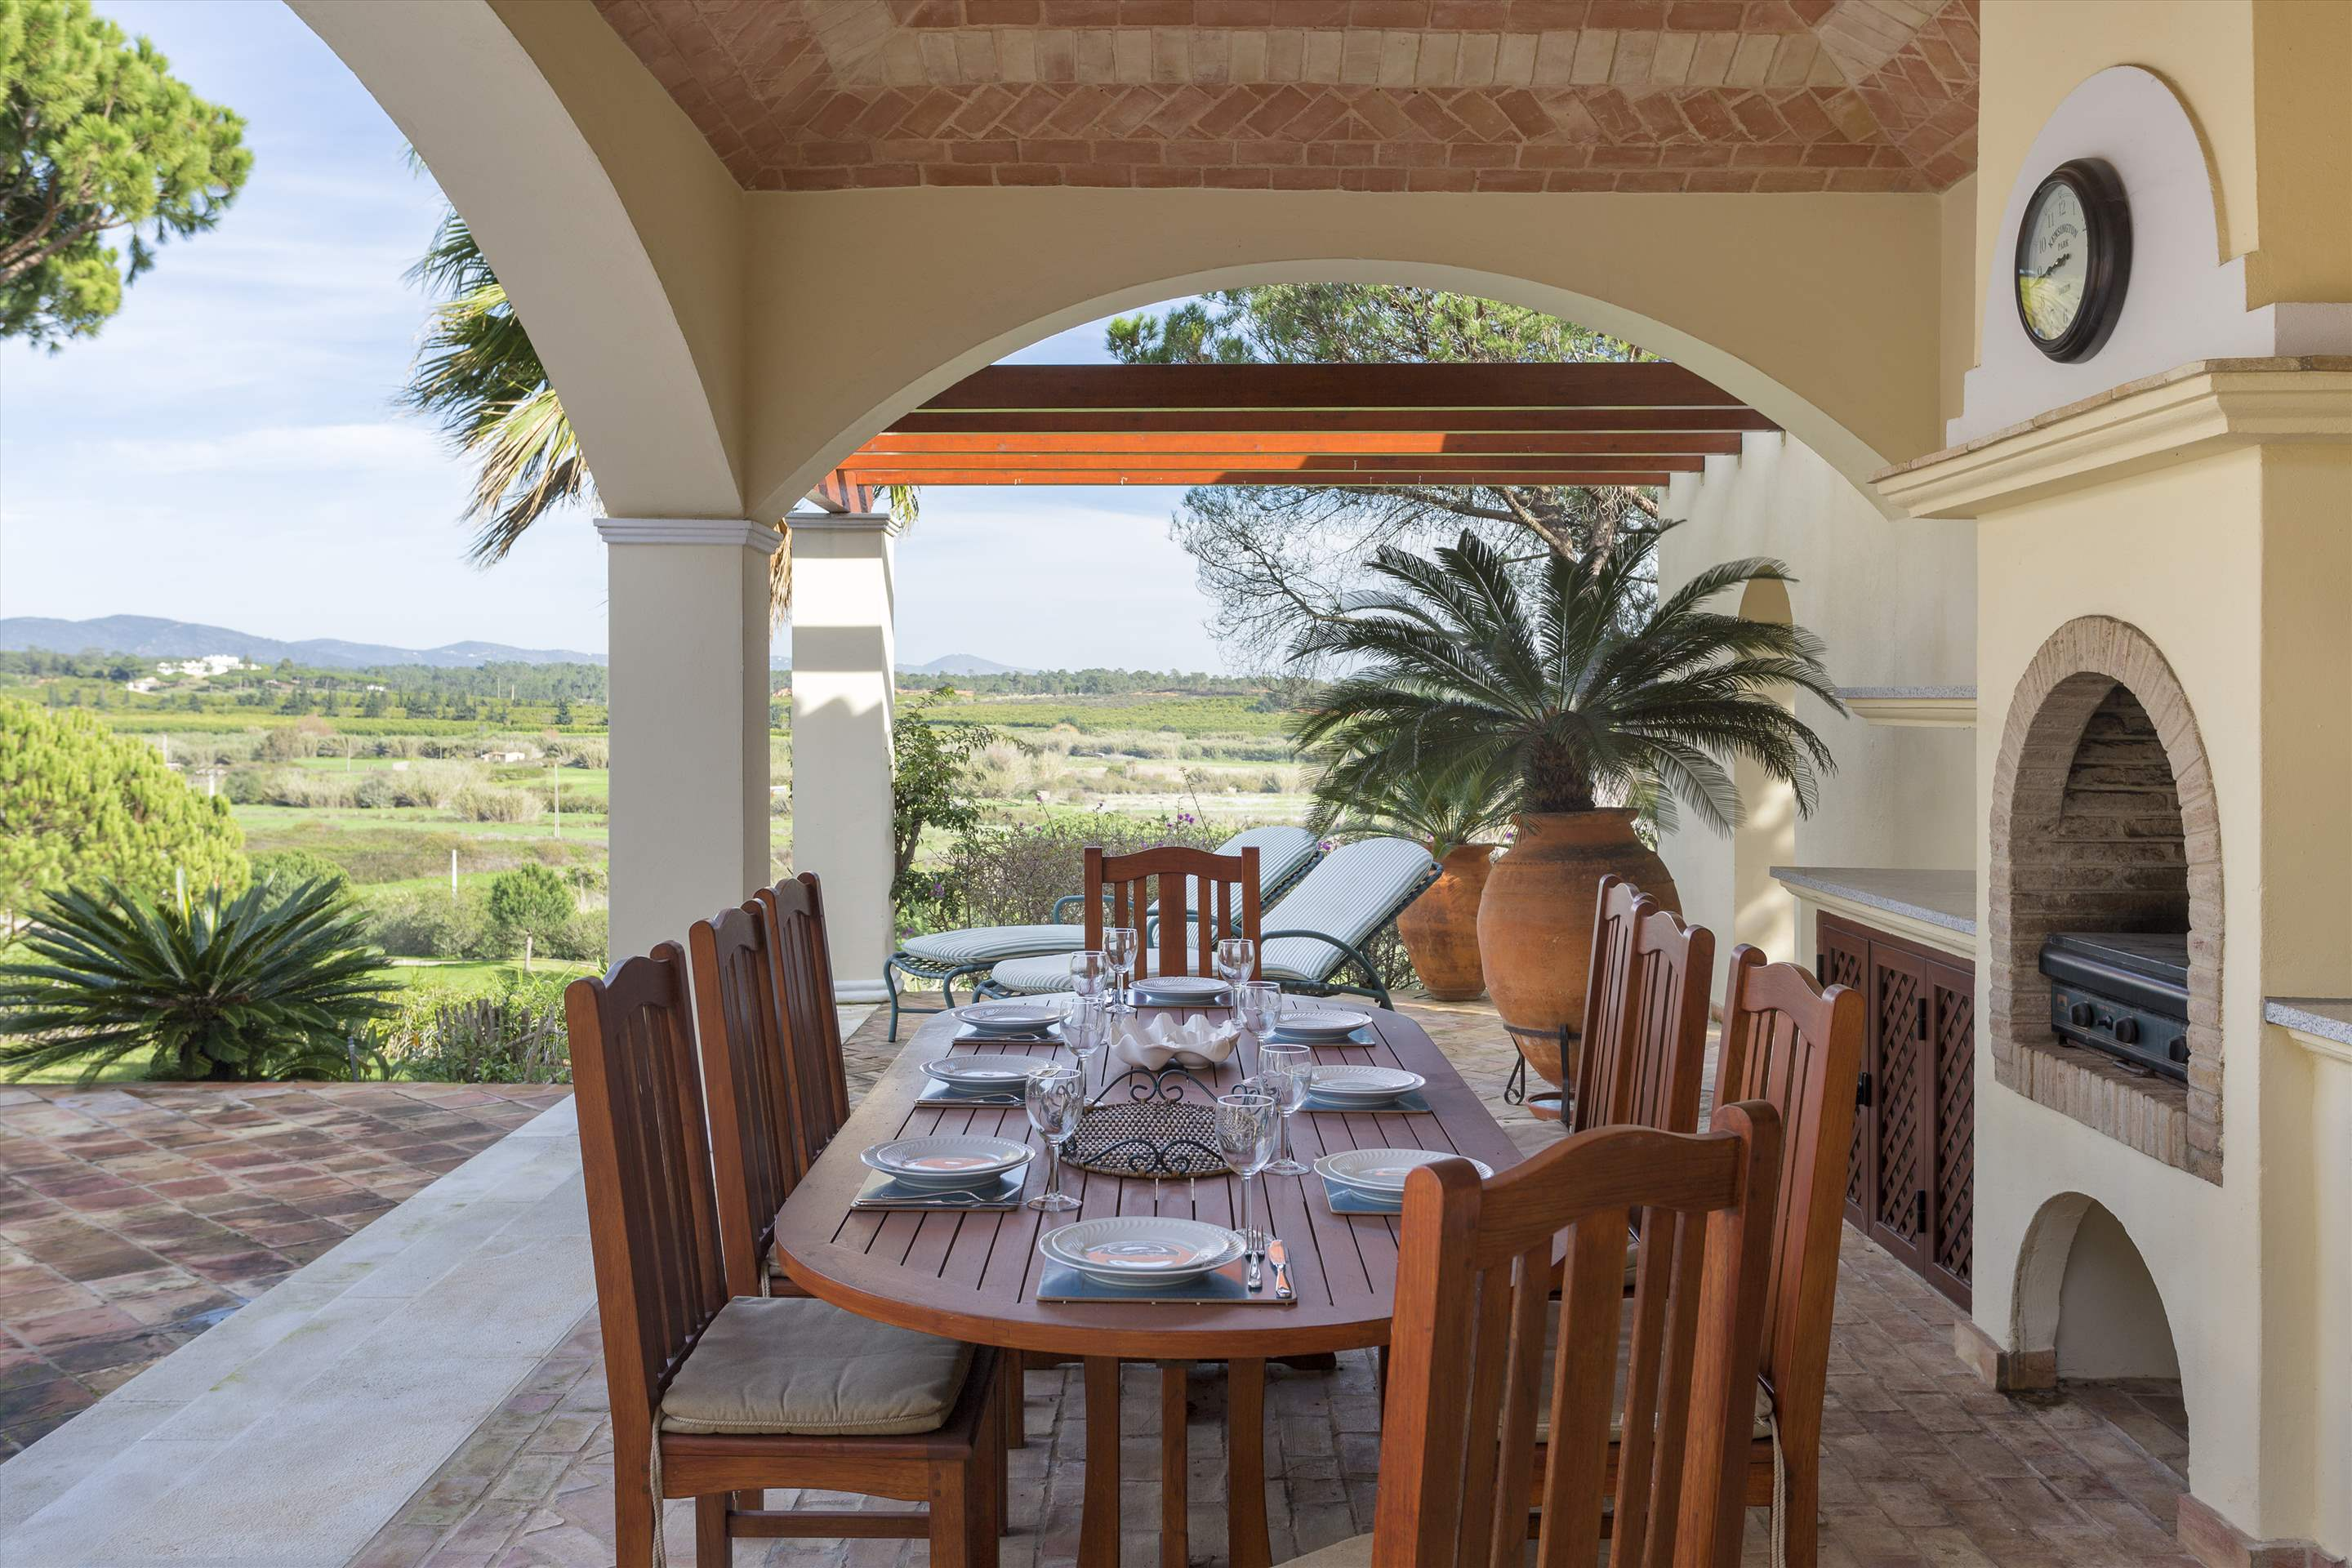 Villa Palmeiras Altas, 5 bedroom villa in Quinta do Lago, Algarve Photo #13